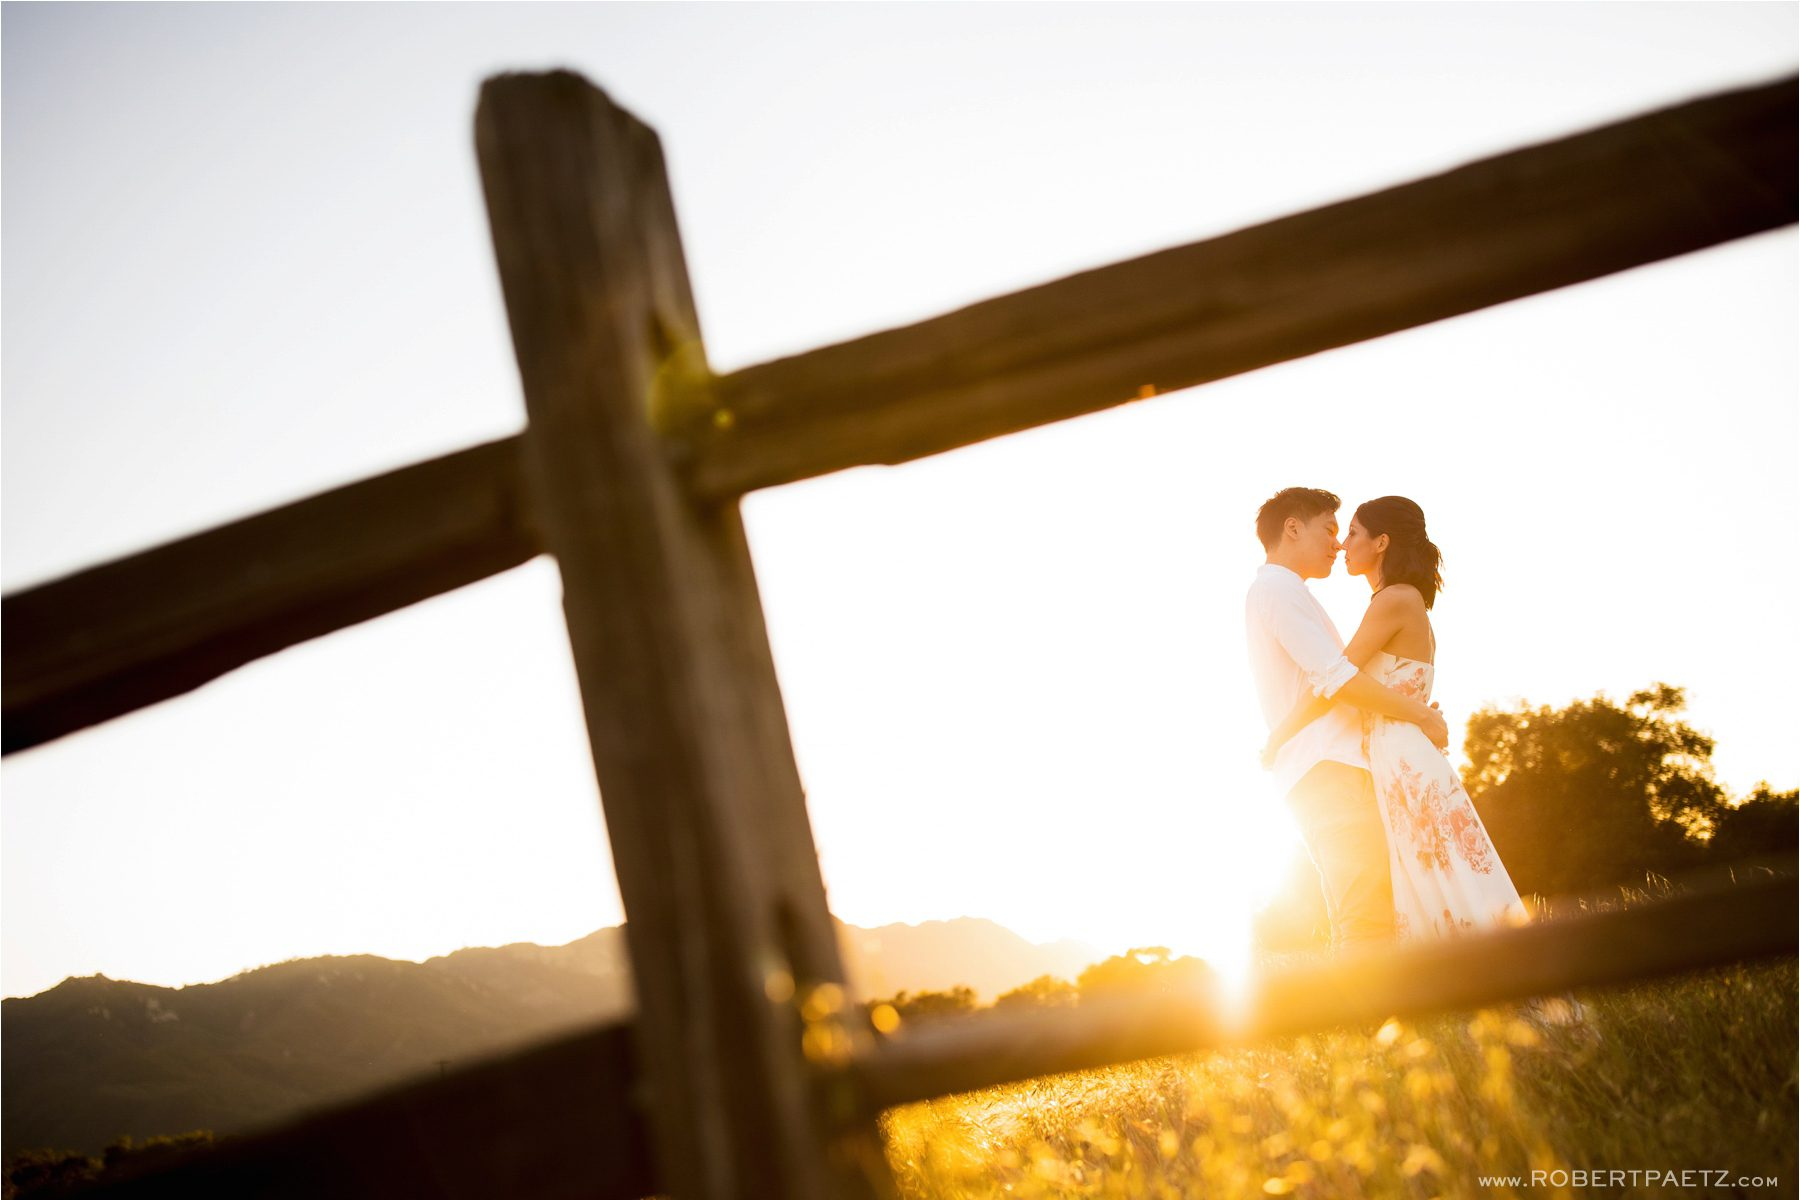 An engagement photography session at Topanga Canyon State Park just outside of Los Angeles by the wedding photographer, Robert Paetz.